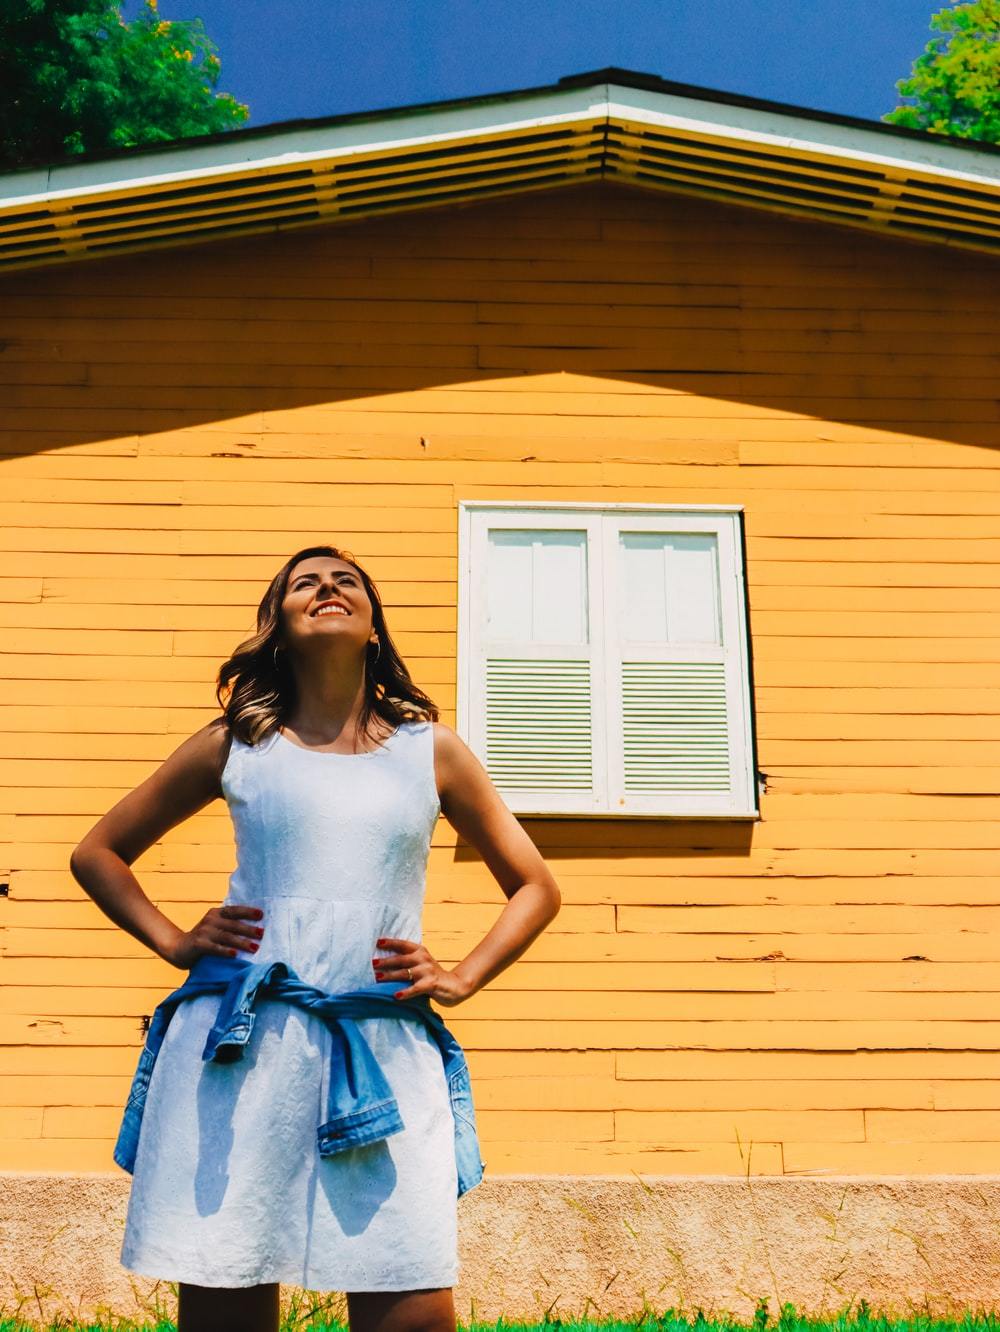 woman in white tank top and blue skirt standing in front of yellow house